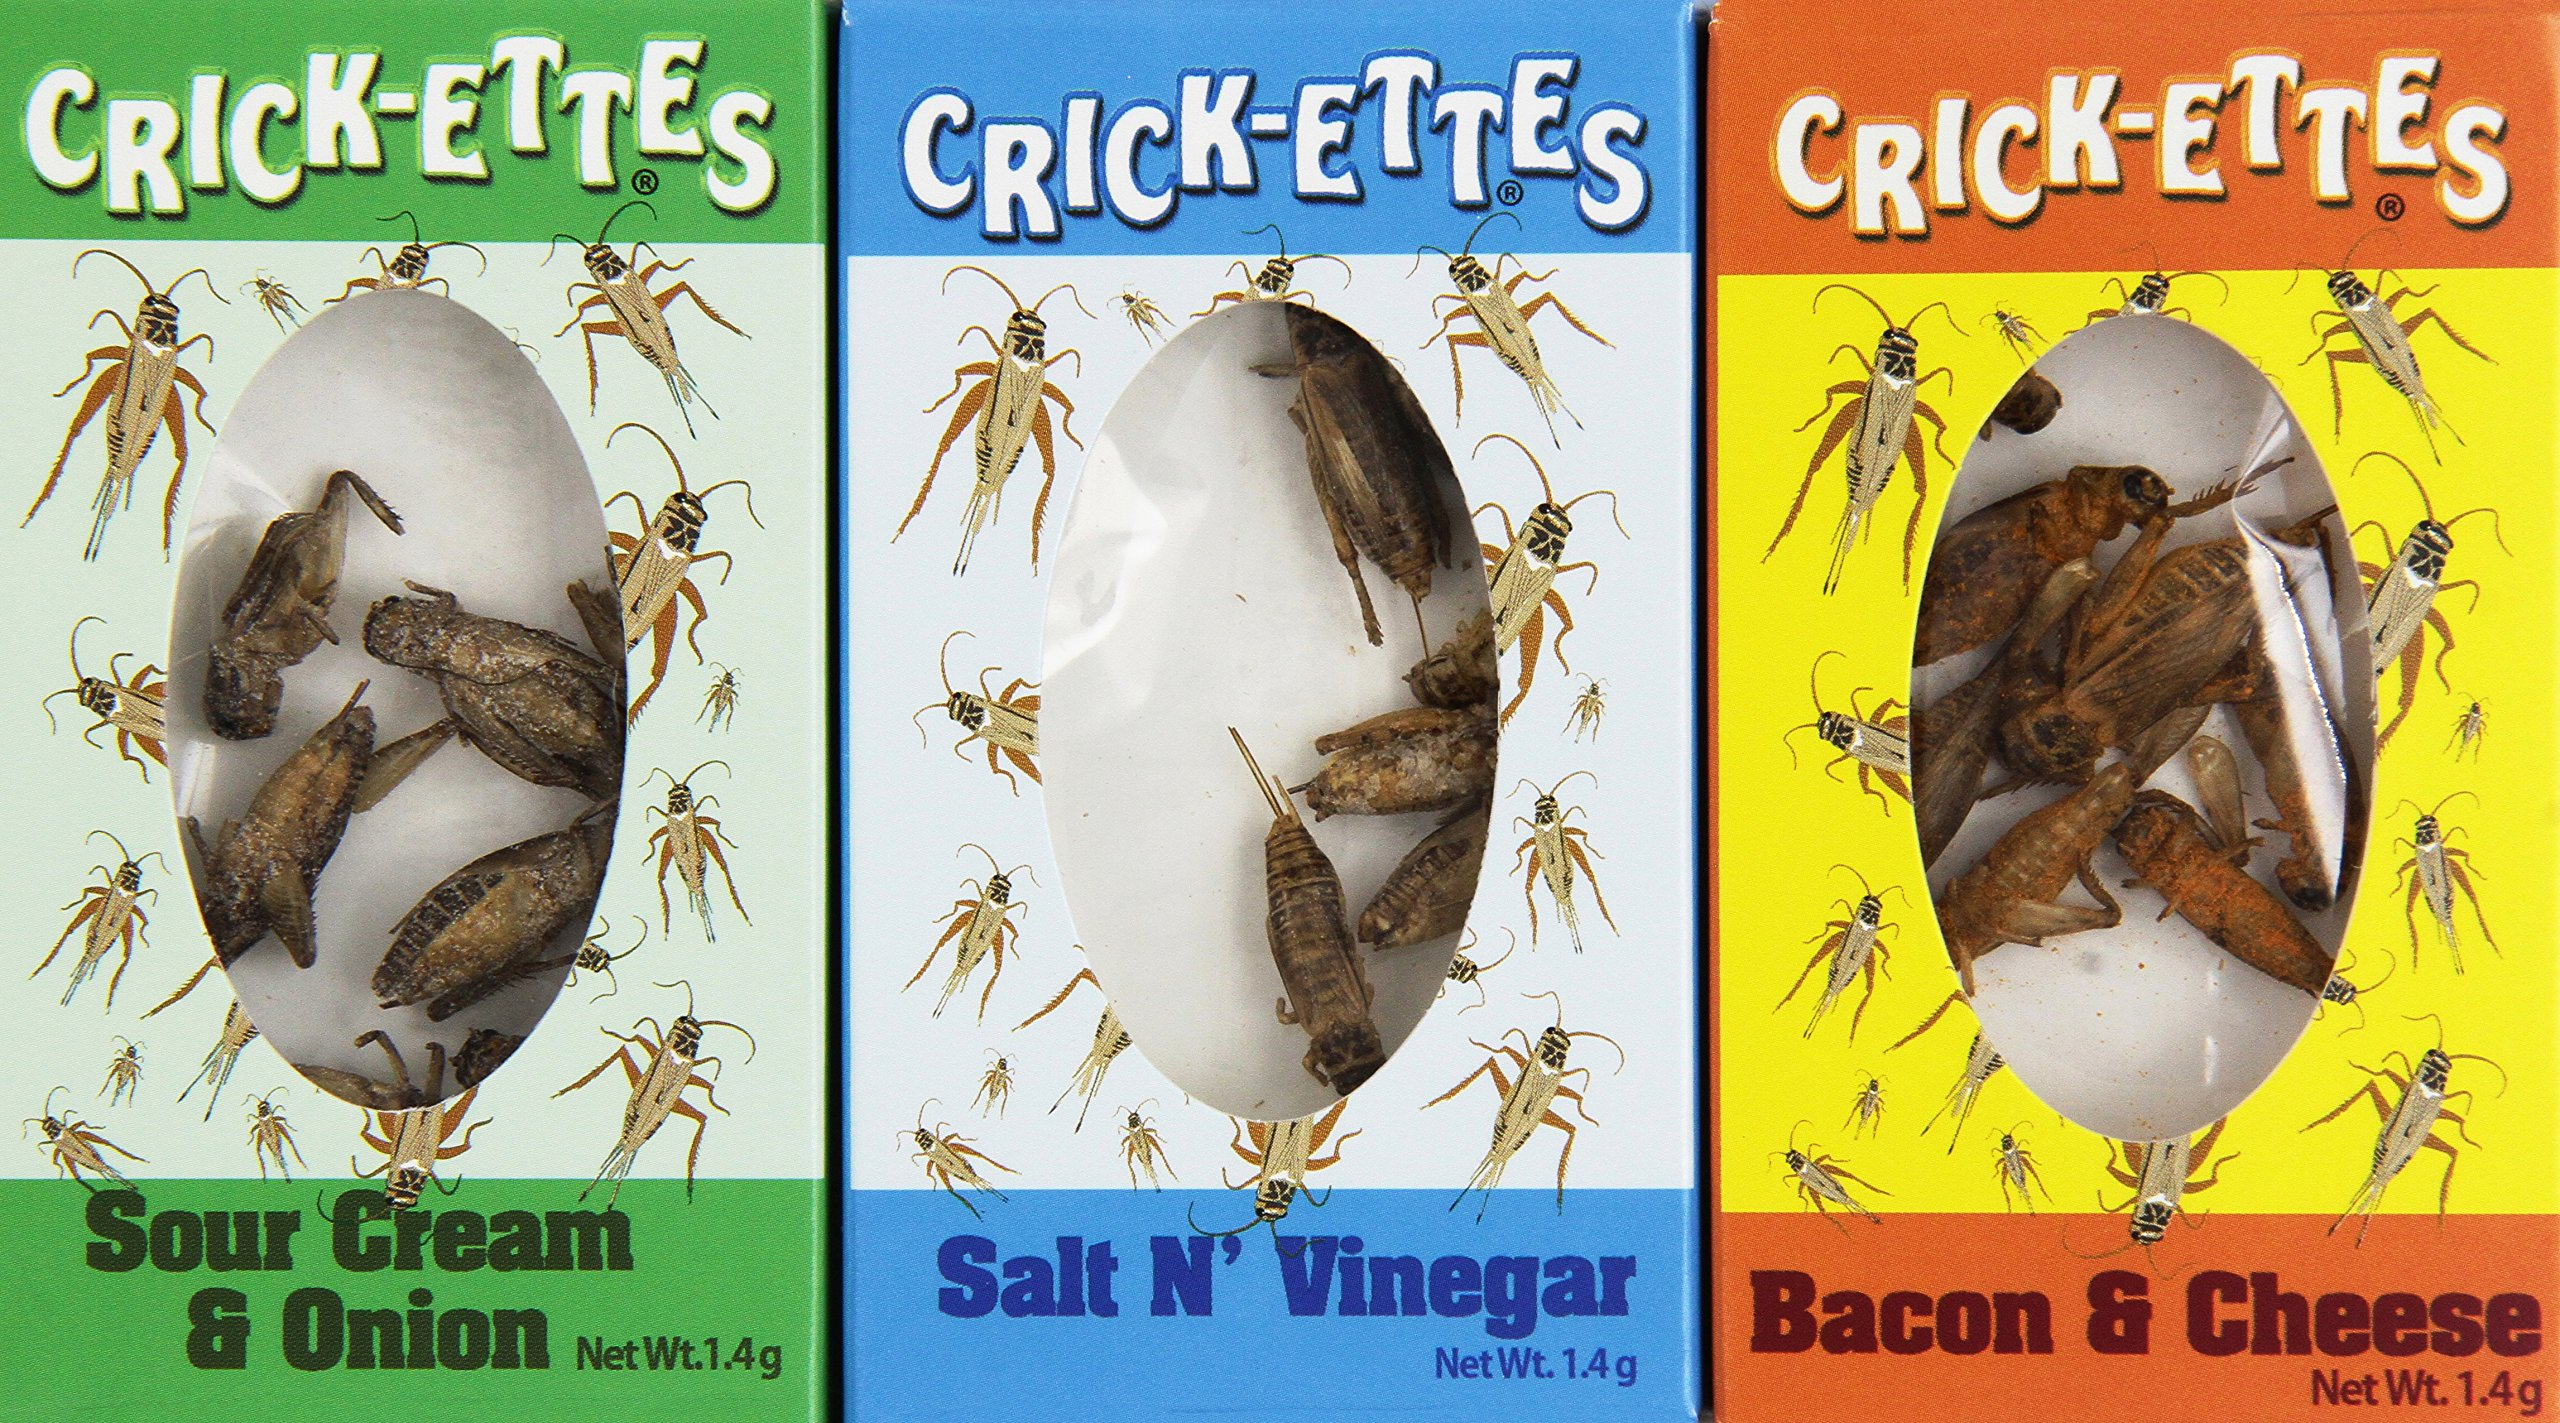 Crick-ettes Sampler Gift Pack- Sour Cream & Onion, Bacon & Cheese, & Salt N' Vinegar by Hotlix